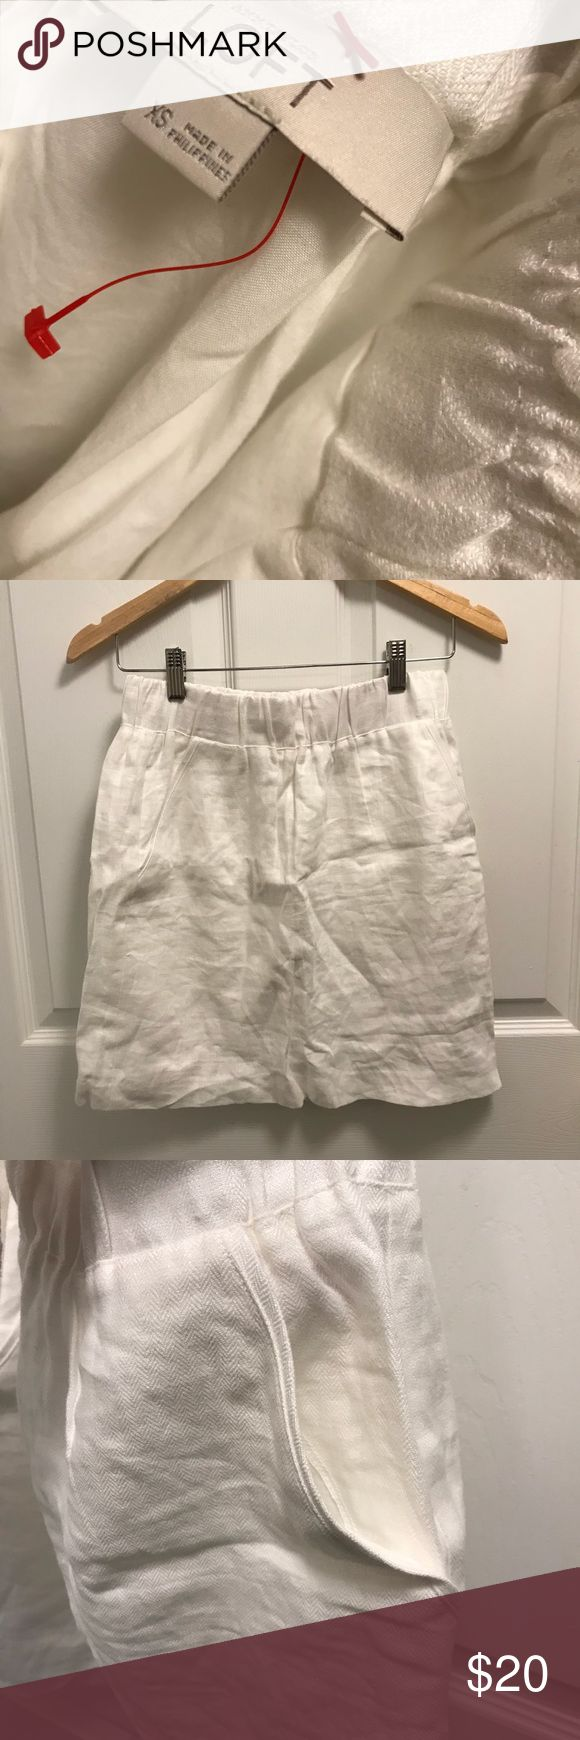 Linen white Anne Taylor LOFT mini skirt Linen white Anne Taylor LOFT skirt I'm 5'3, skirts sits right above knee length Elastic waist  Thick cotton lining for security and no see through when wearing LOFT Skirts